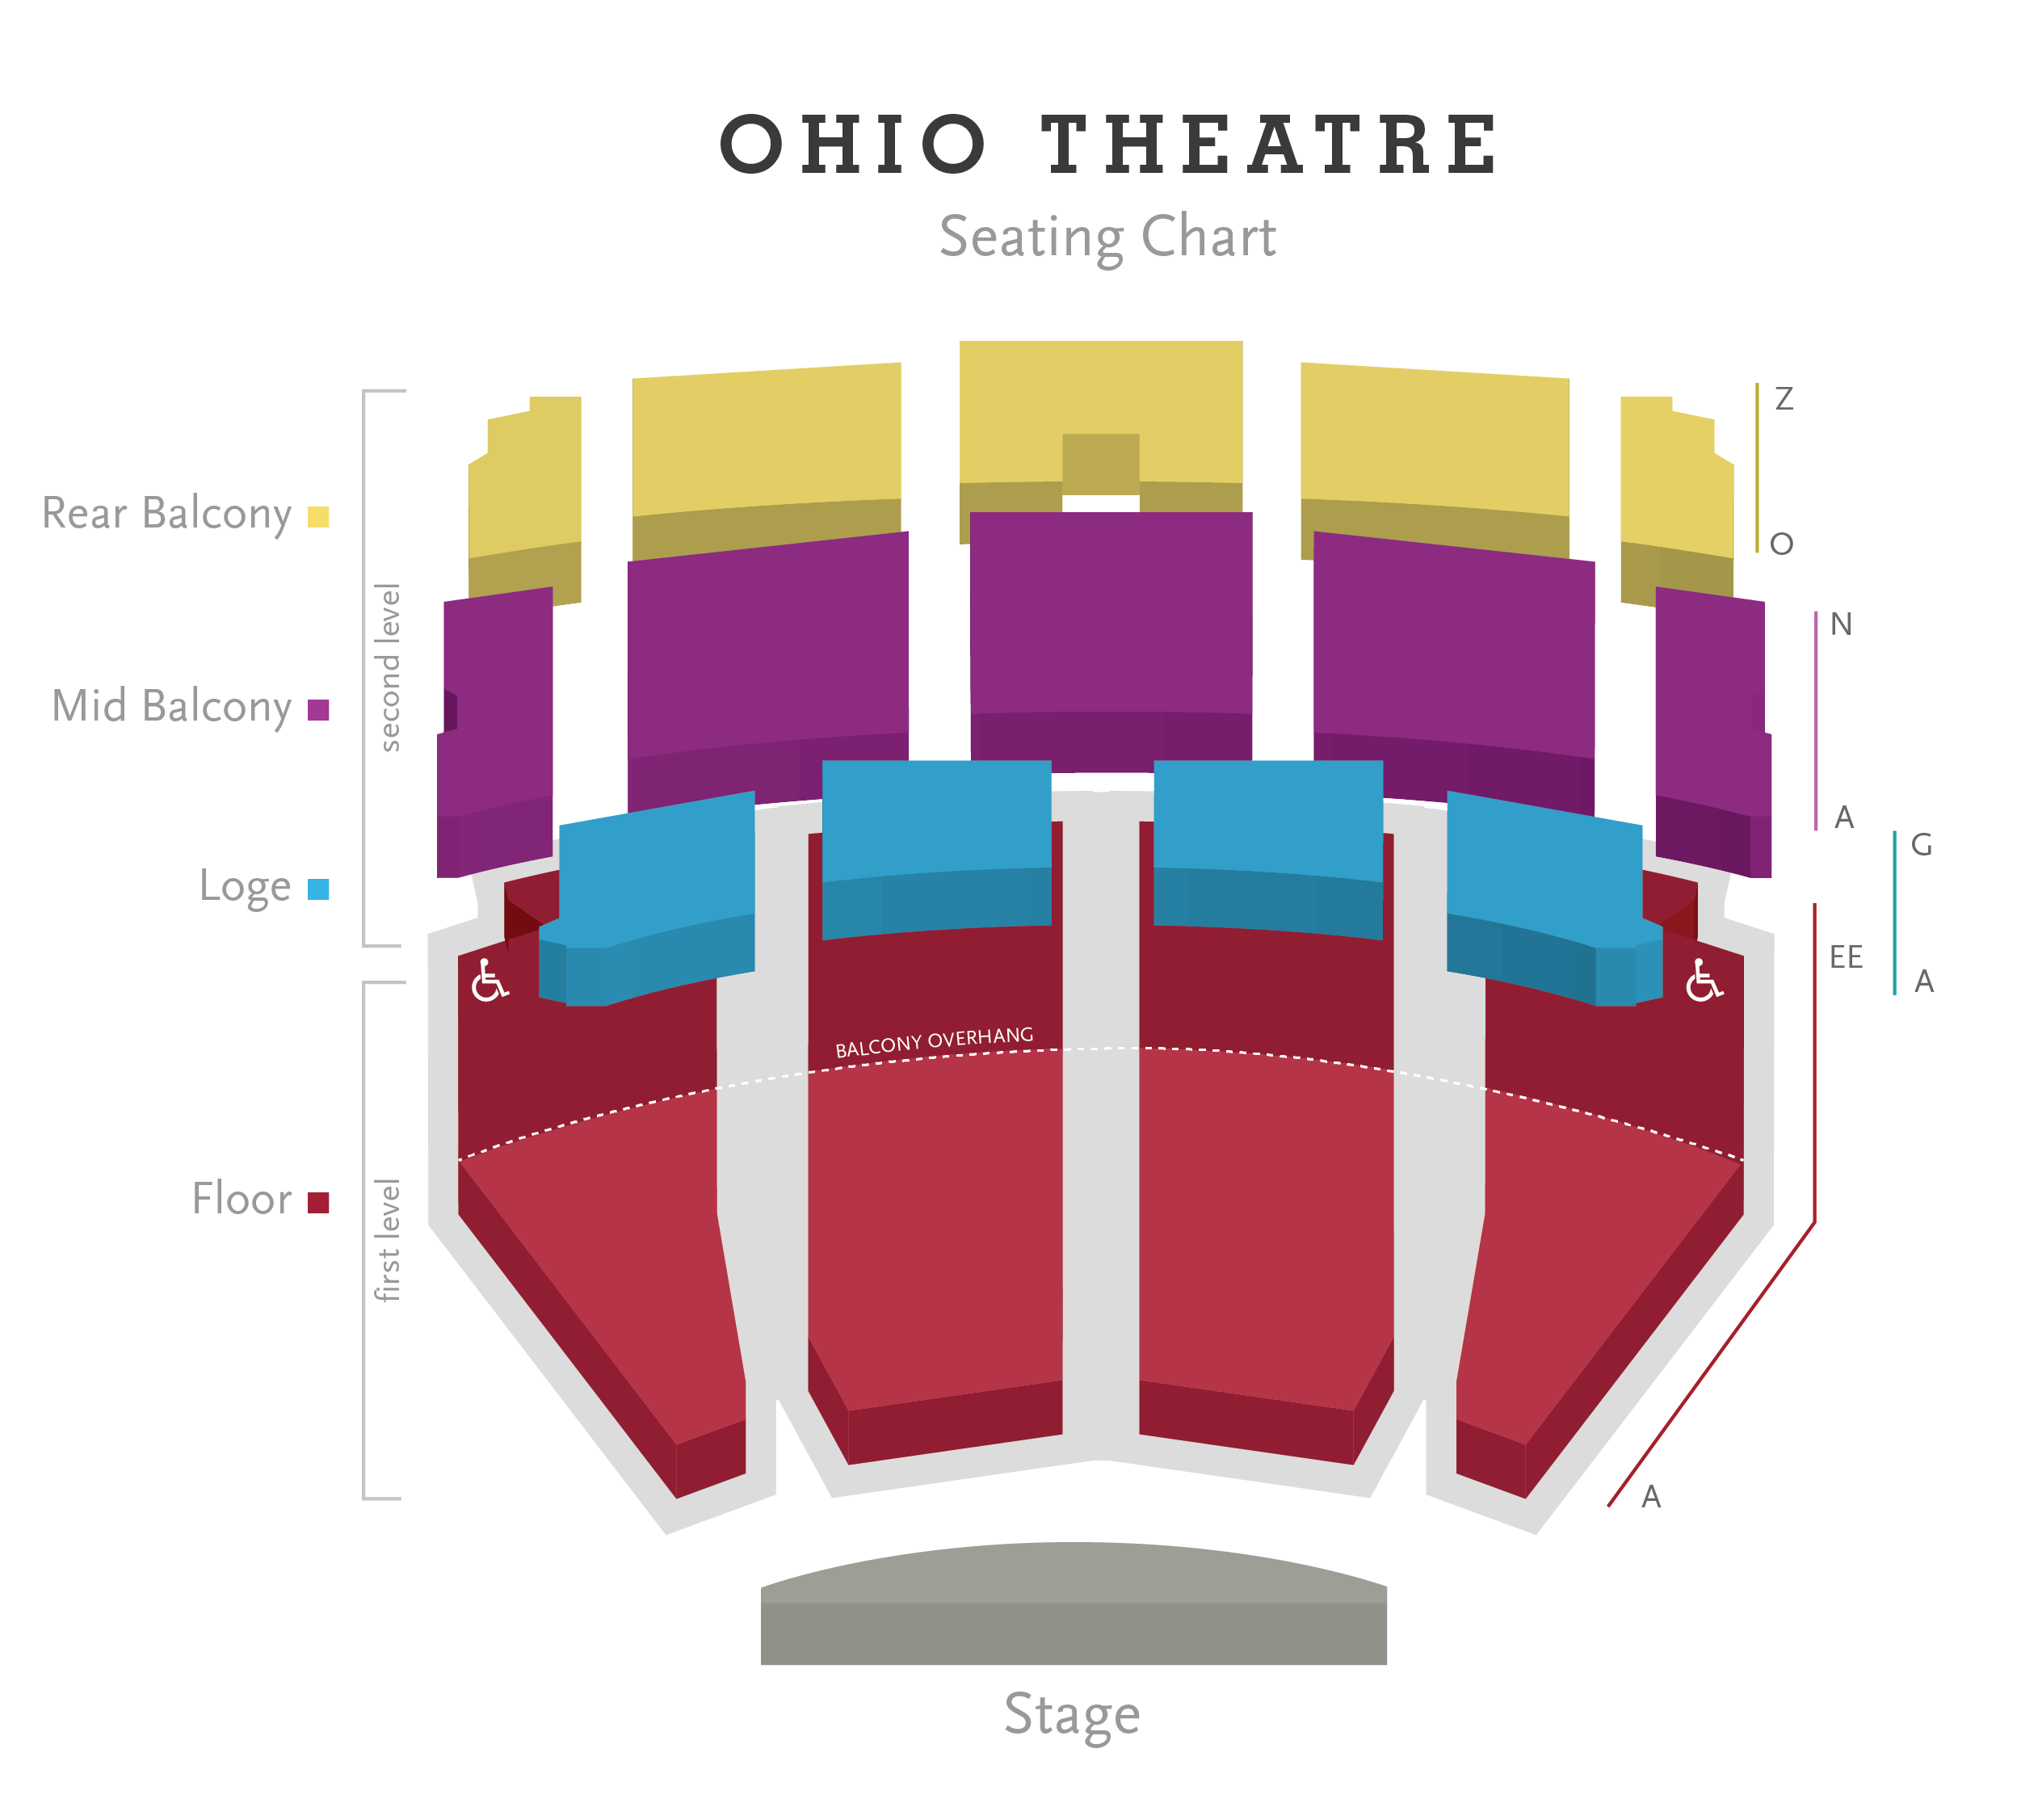 Seating Charts | Columbus Association for the Performing Arts